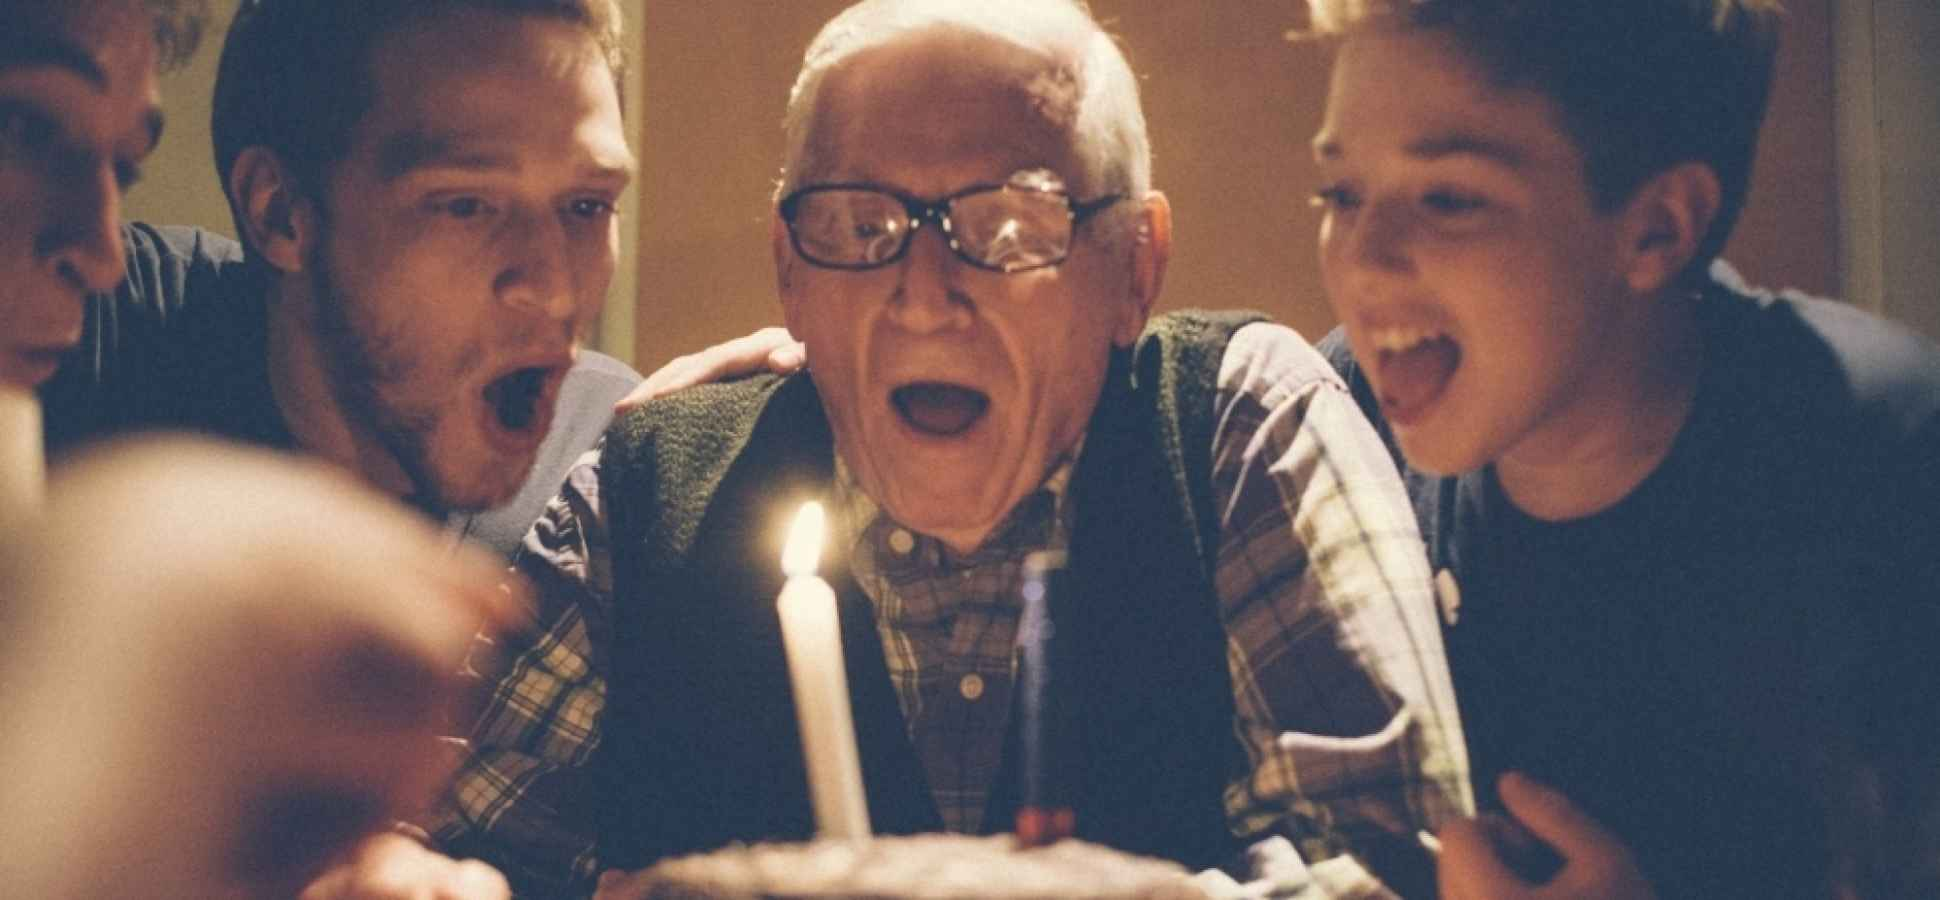 The Definition of Happiness Changes as You Age, According to Science